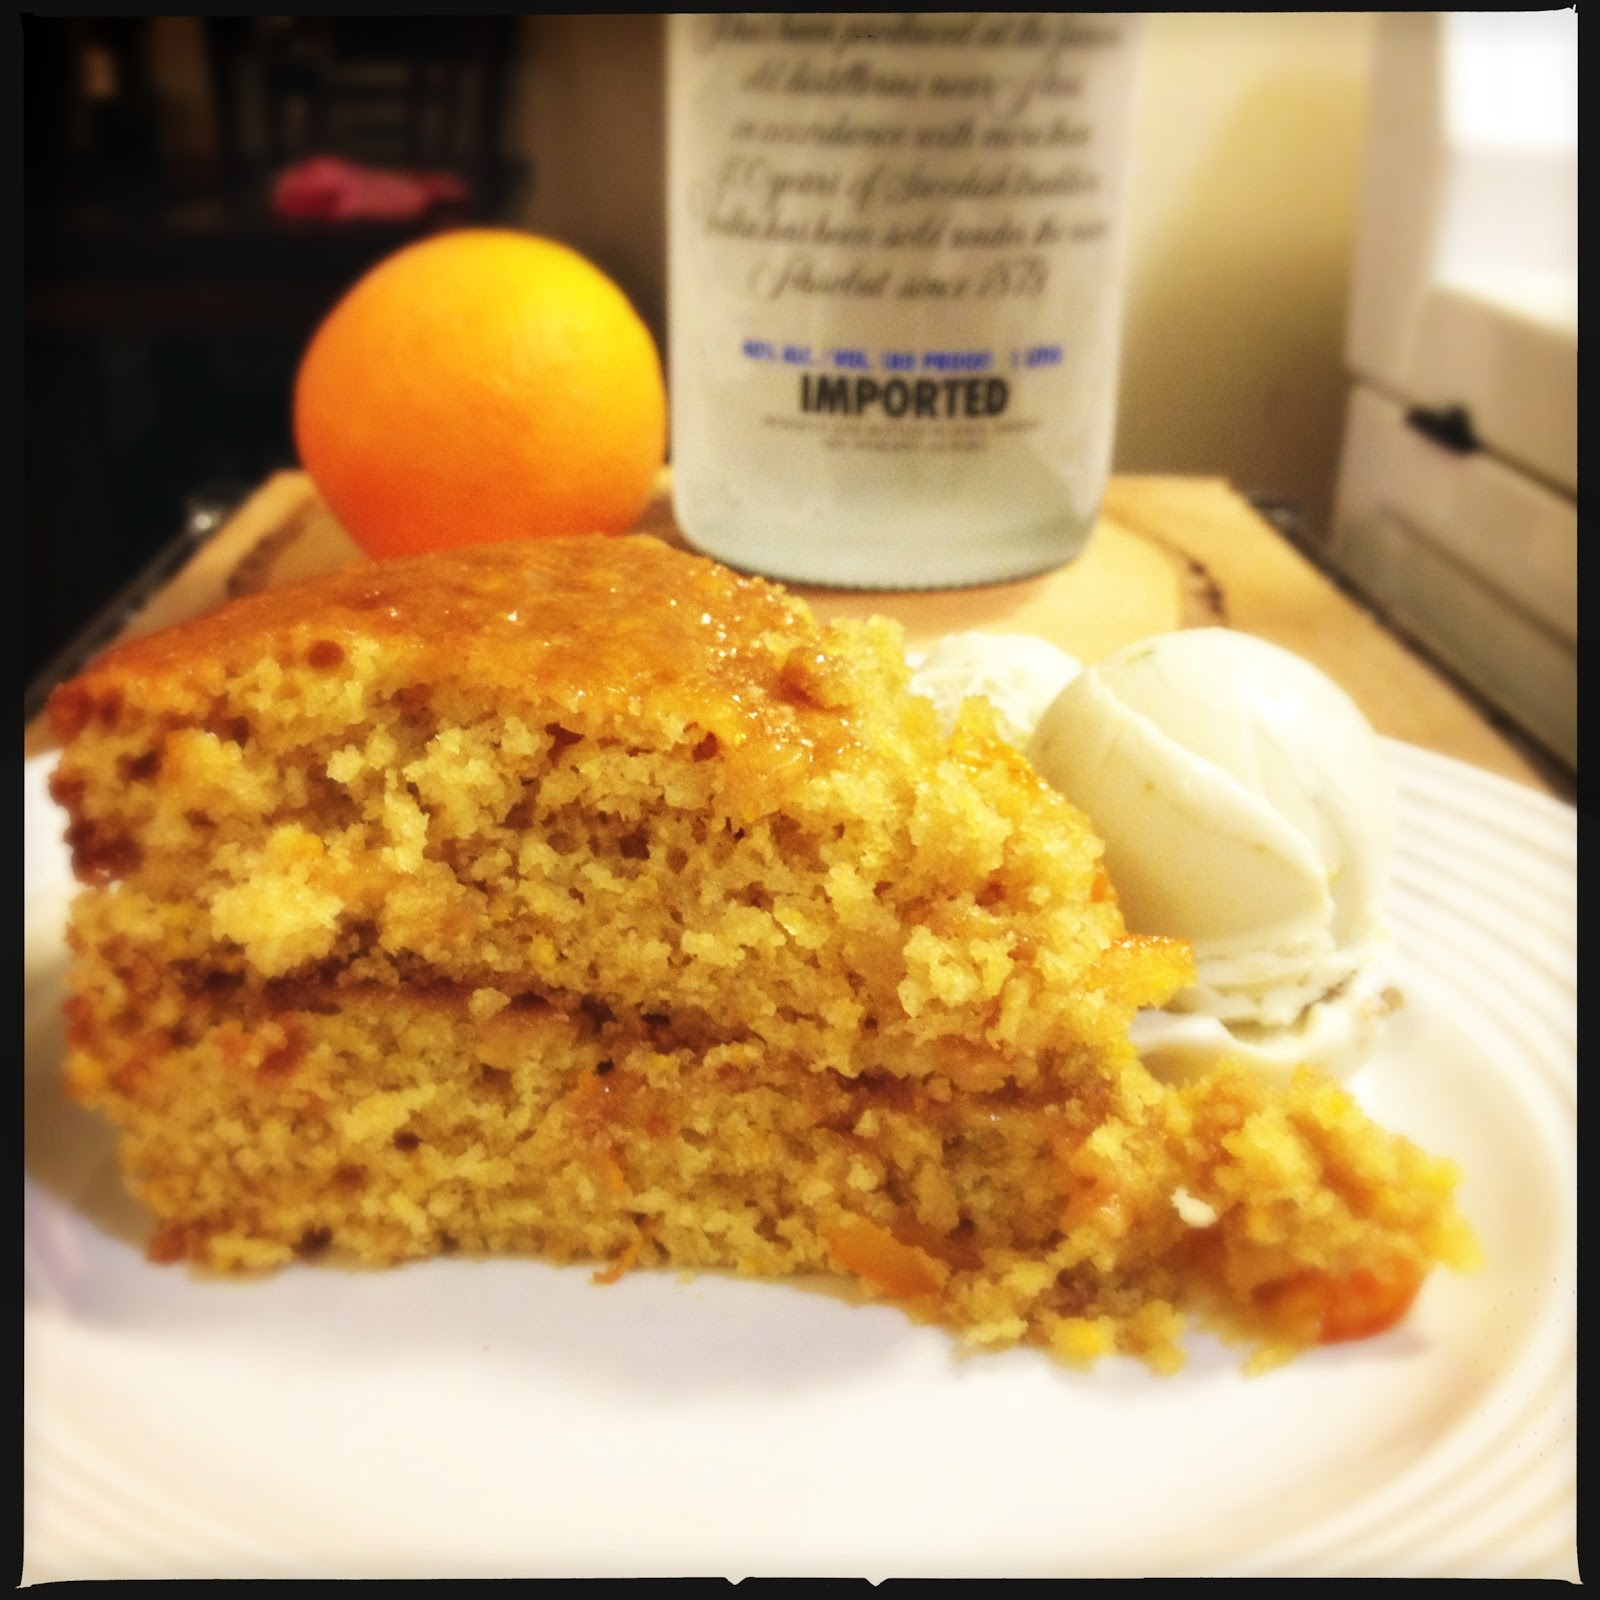 Donna Hay's Sticky Orange And Vanilla Upside-Down Cake ...